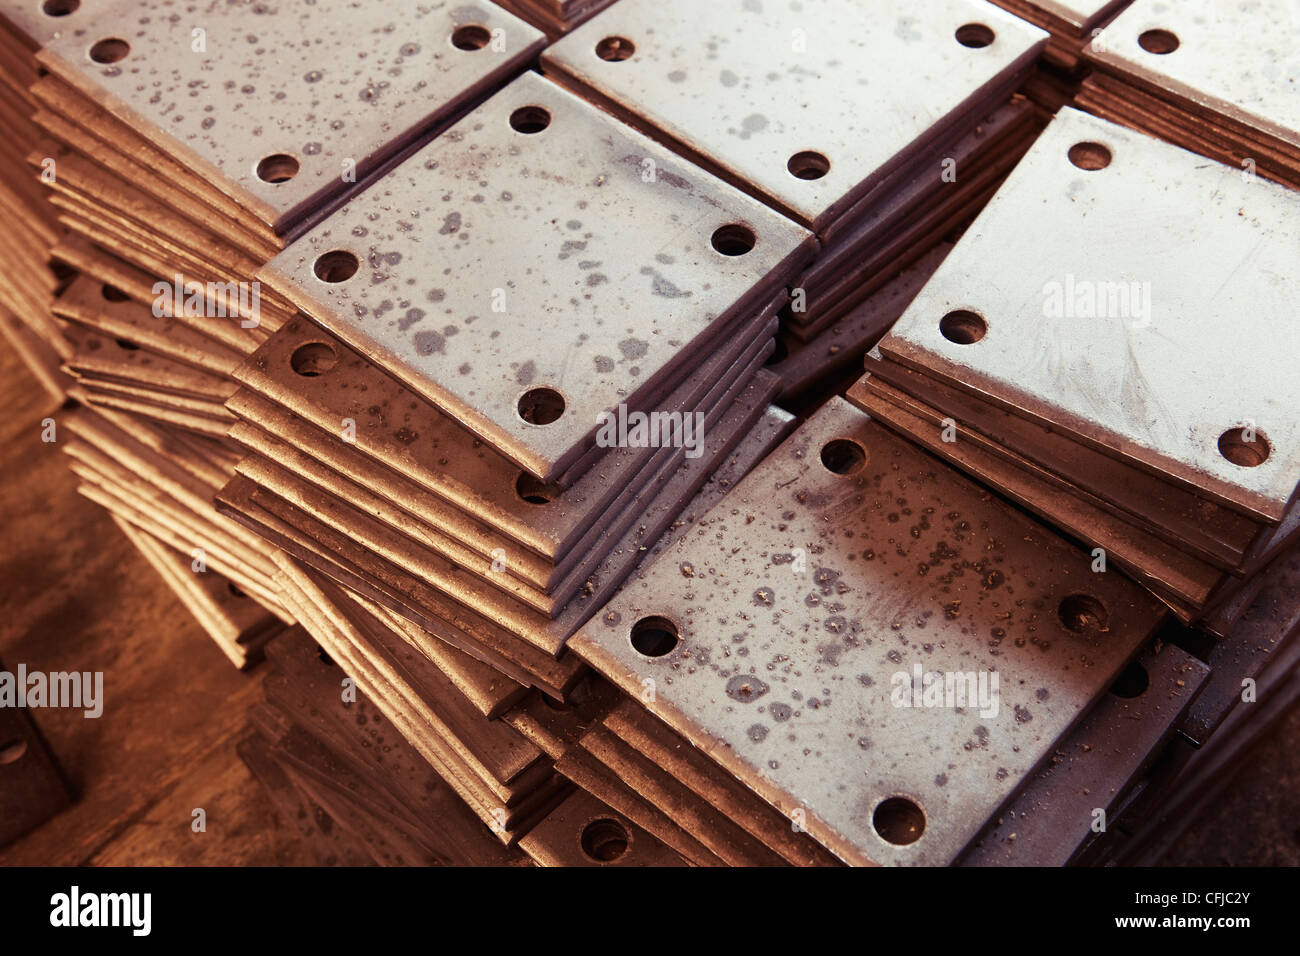 Grunge rusty rectangle metal plates with round holes placed on wooden textured board - Stock Image